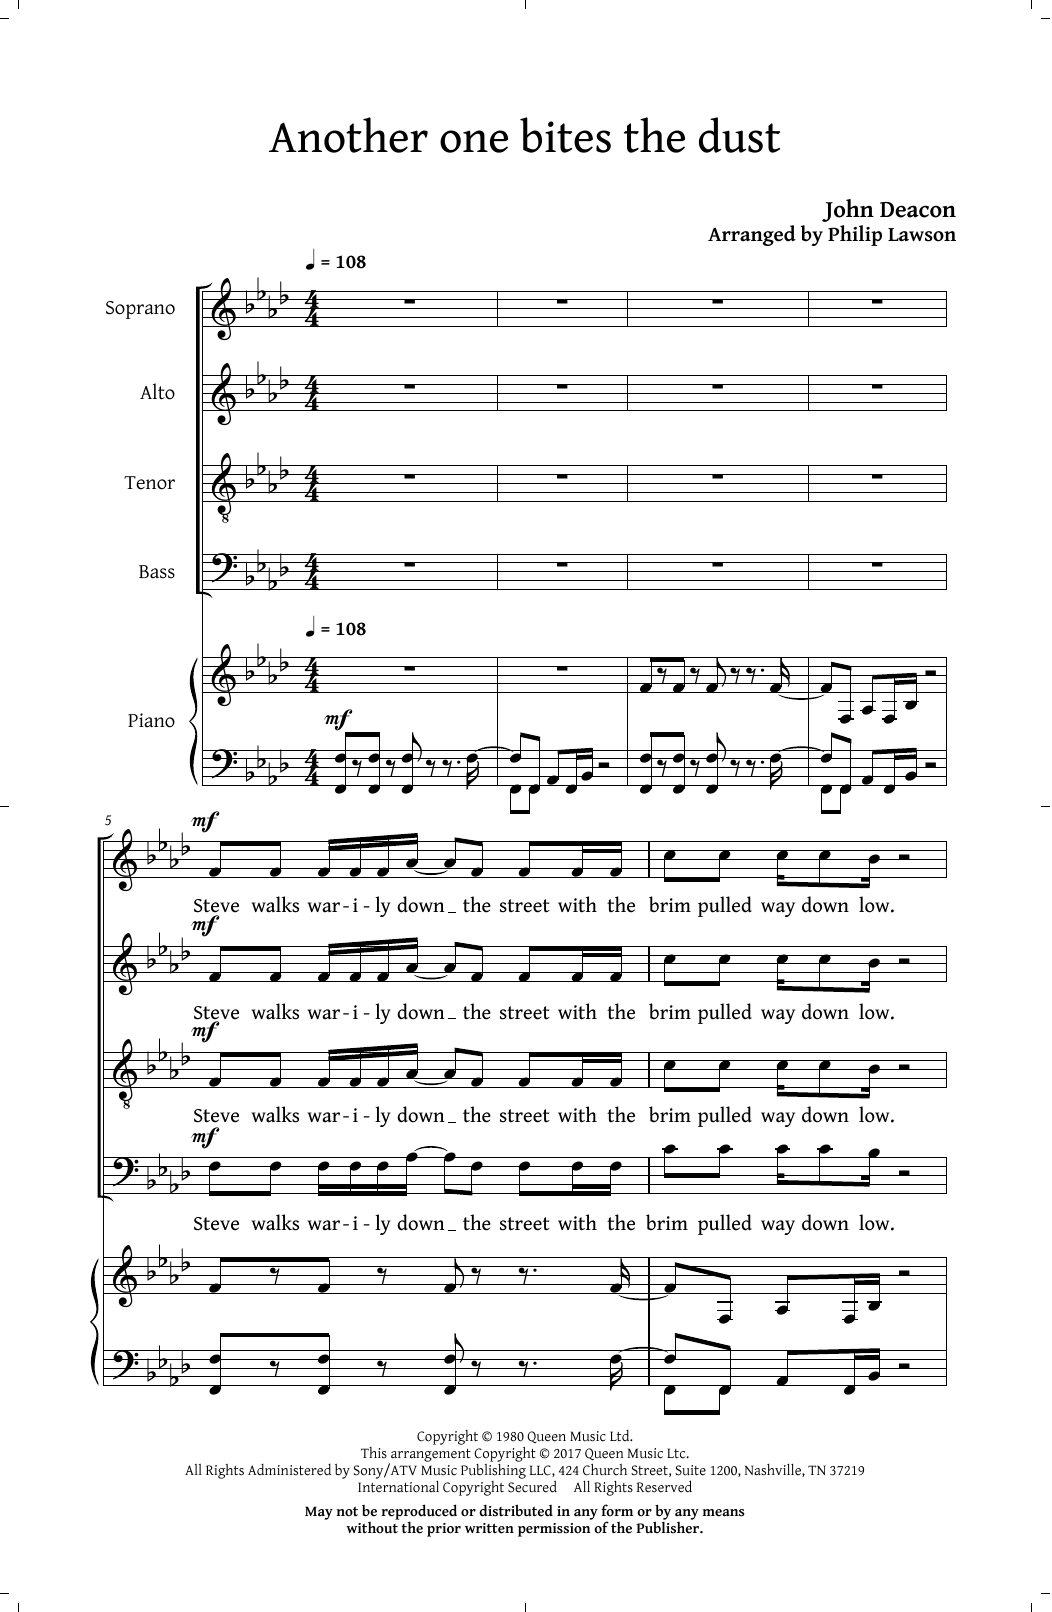 Classic Queen (Choral Collection) (Arr. Philip Lawson) (SATB Choir)